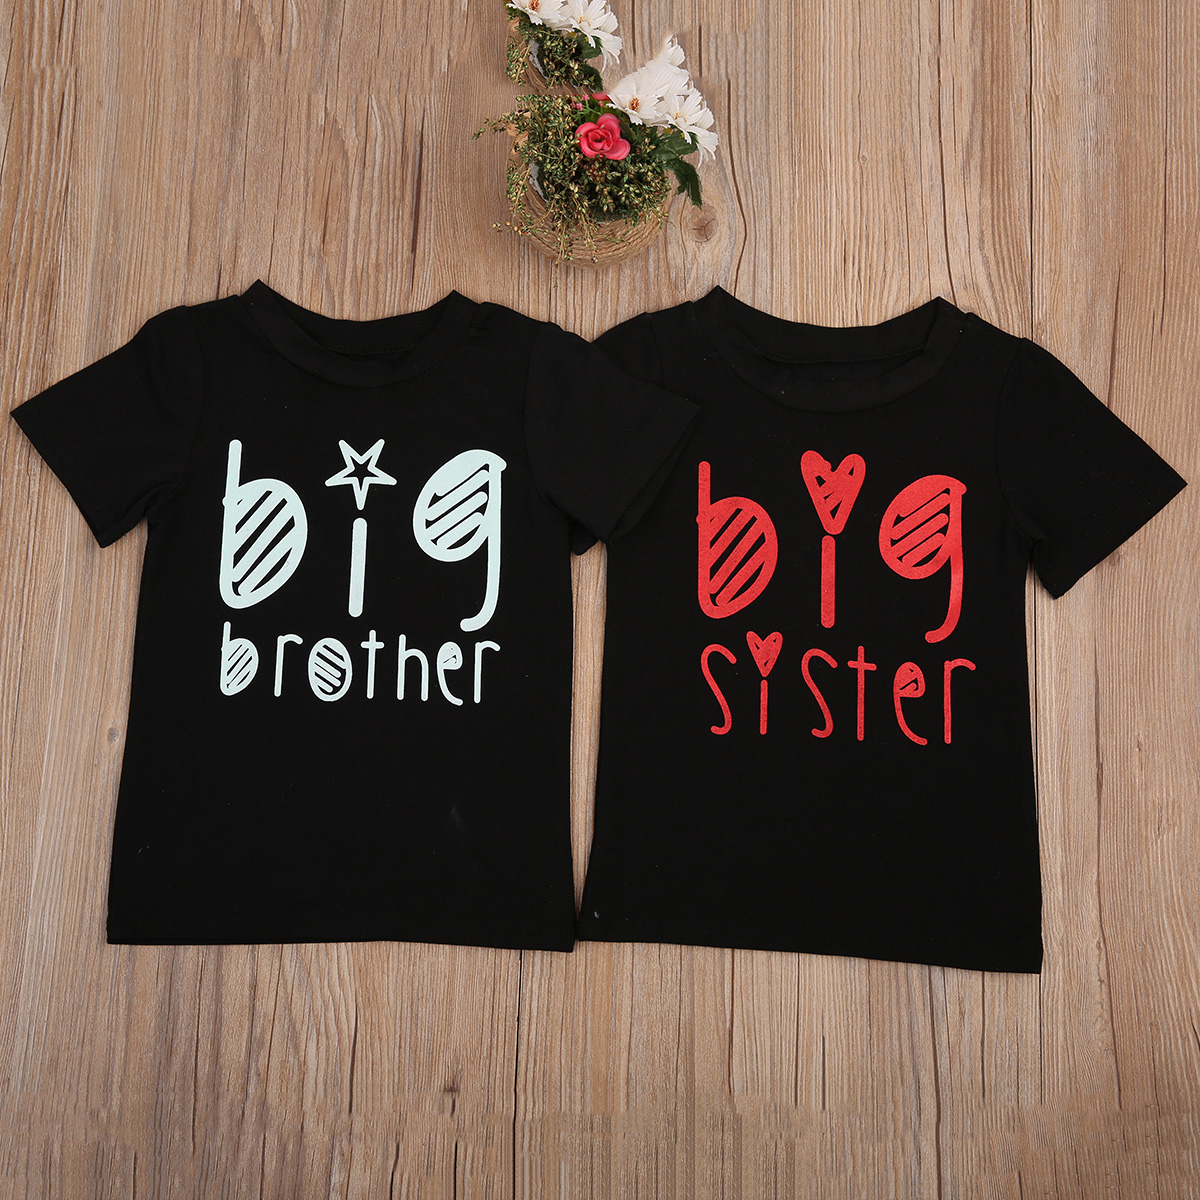 Pudcoco Big sister big brother Graphic tees Black Match Outfit T-shirt